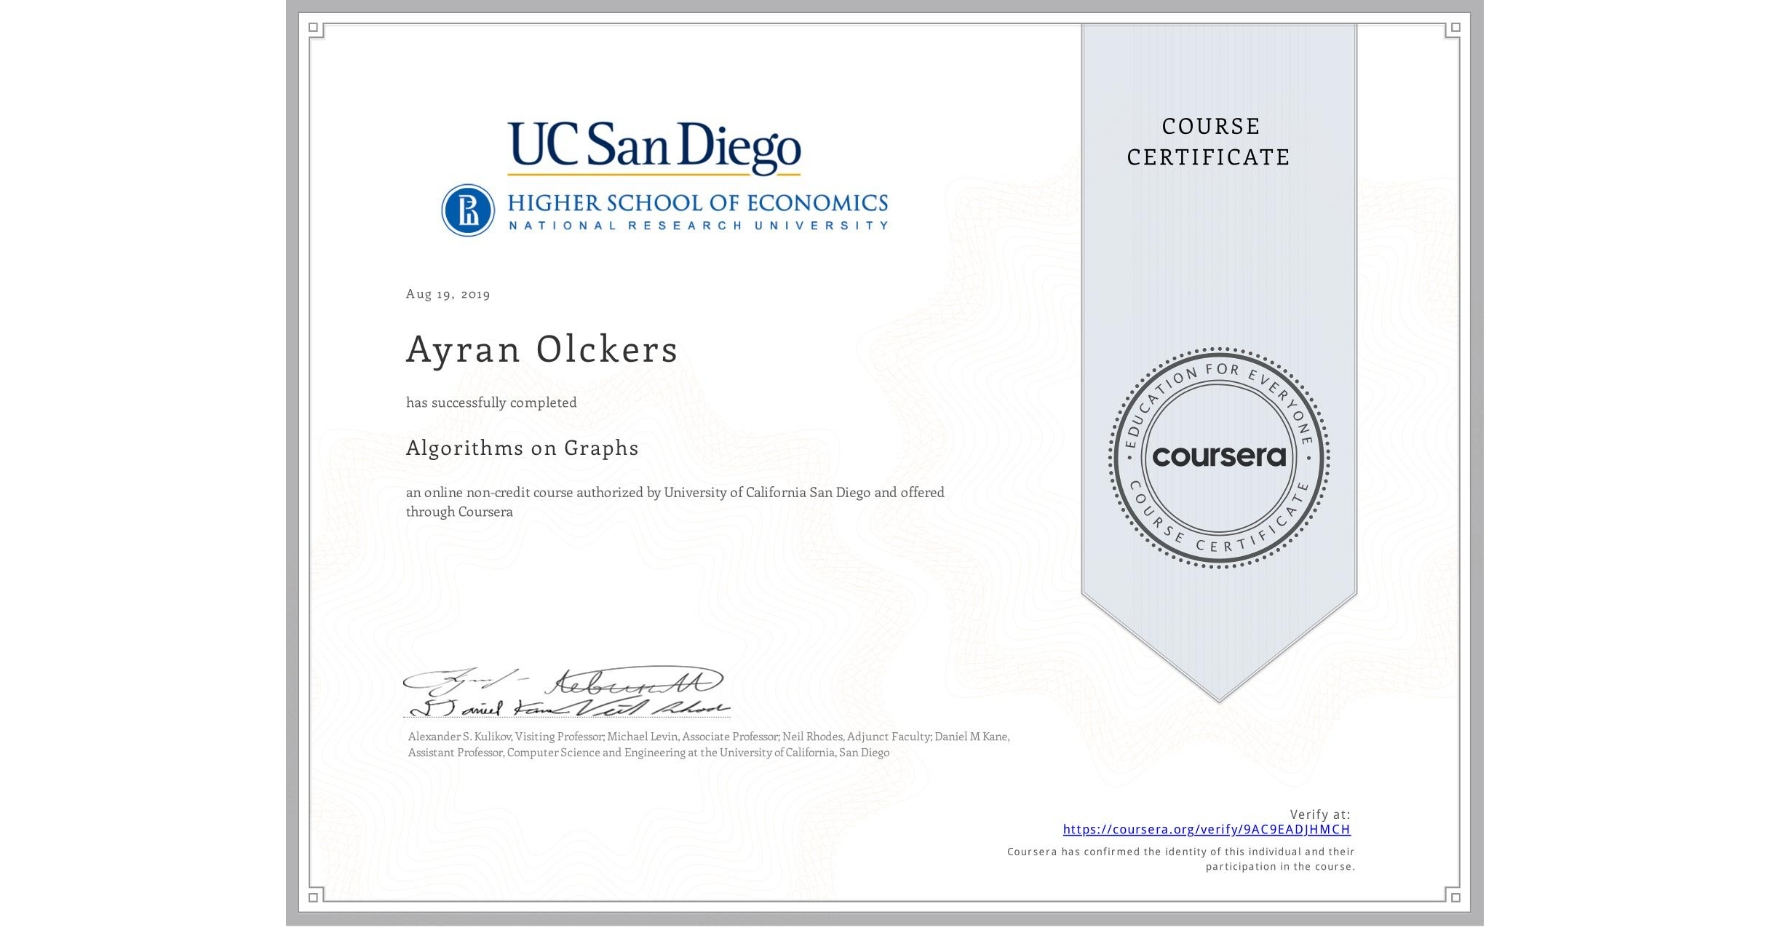 View certificate for Ayran Olckers, Algorithms on Graphs, an online non-credit course authorized by University of California San Diego & HSE University and offered through Coursera